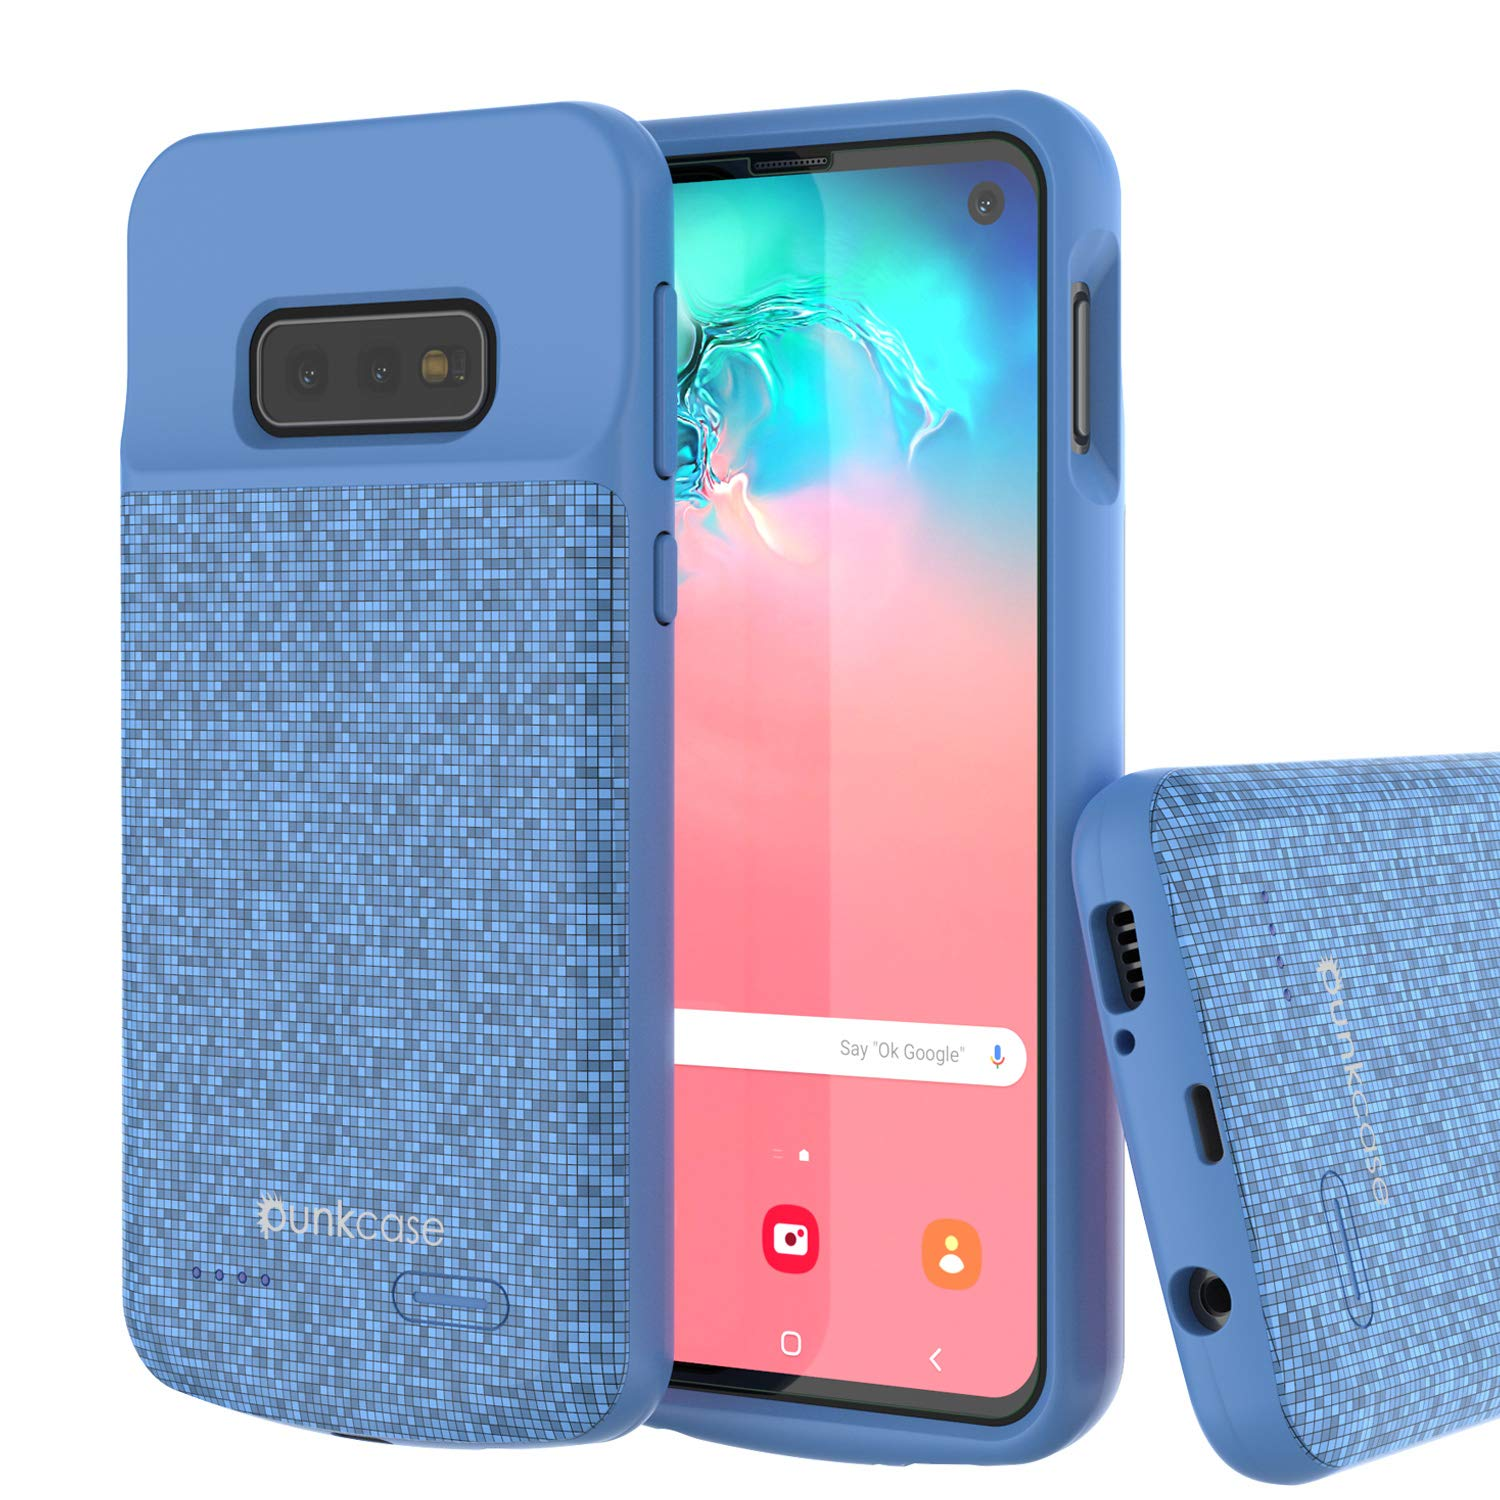 PunkJuice S10e Battery Case Blue - Fast Charging Power Juice Bank with 4700mAh